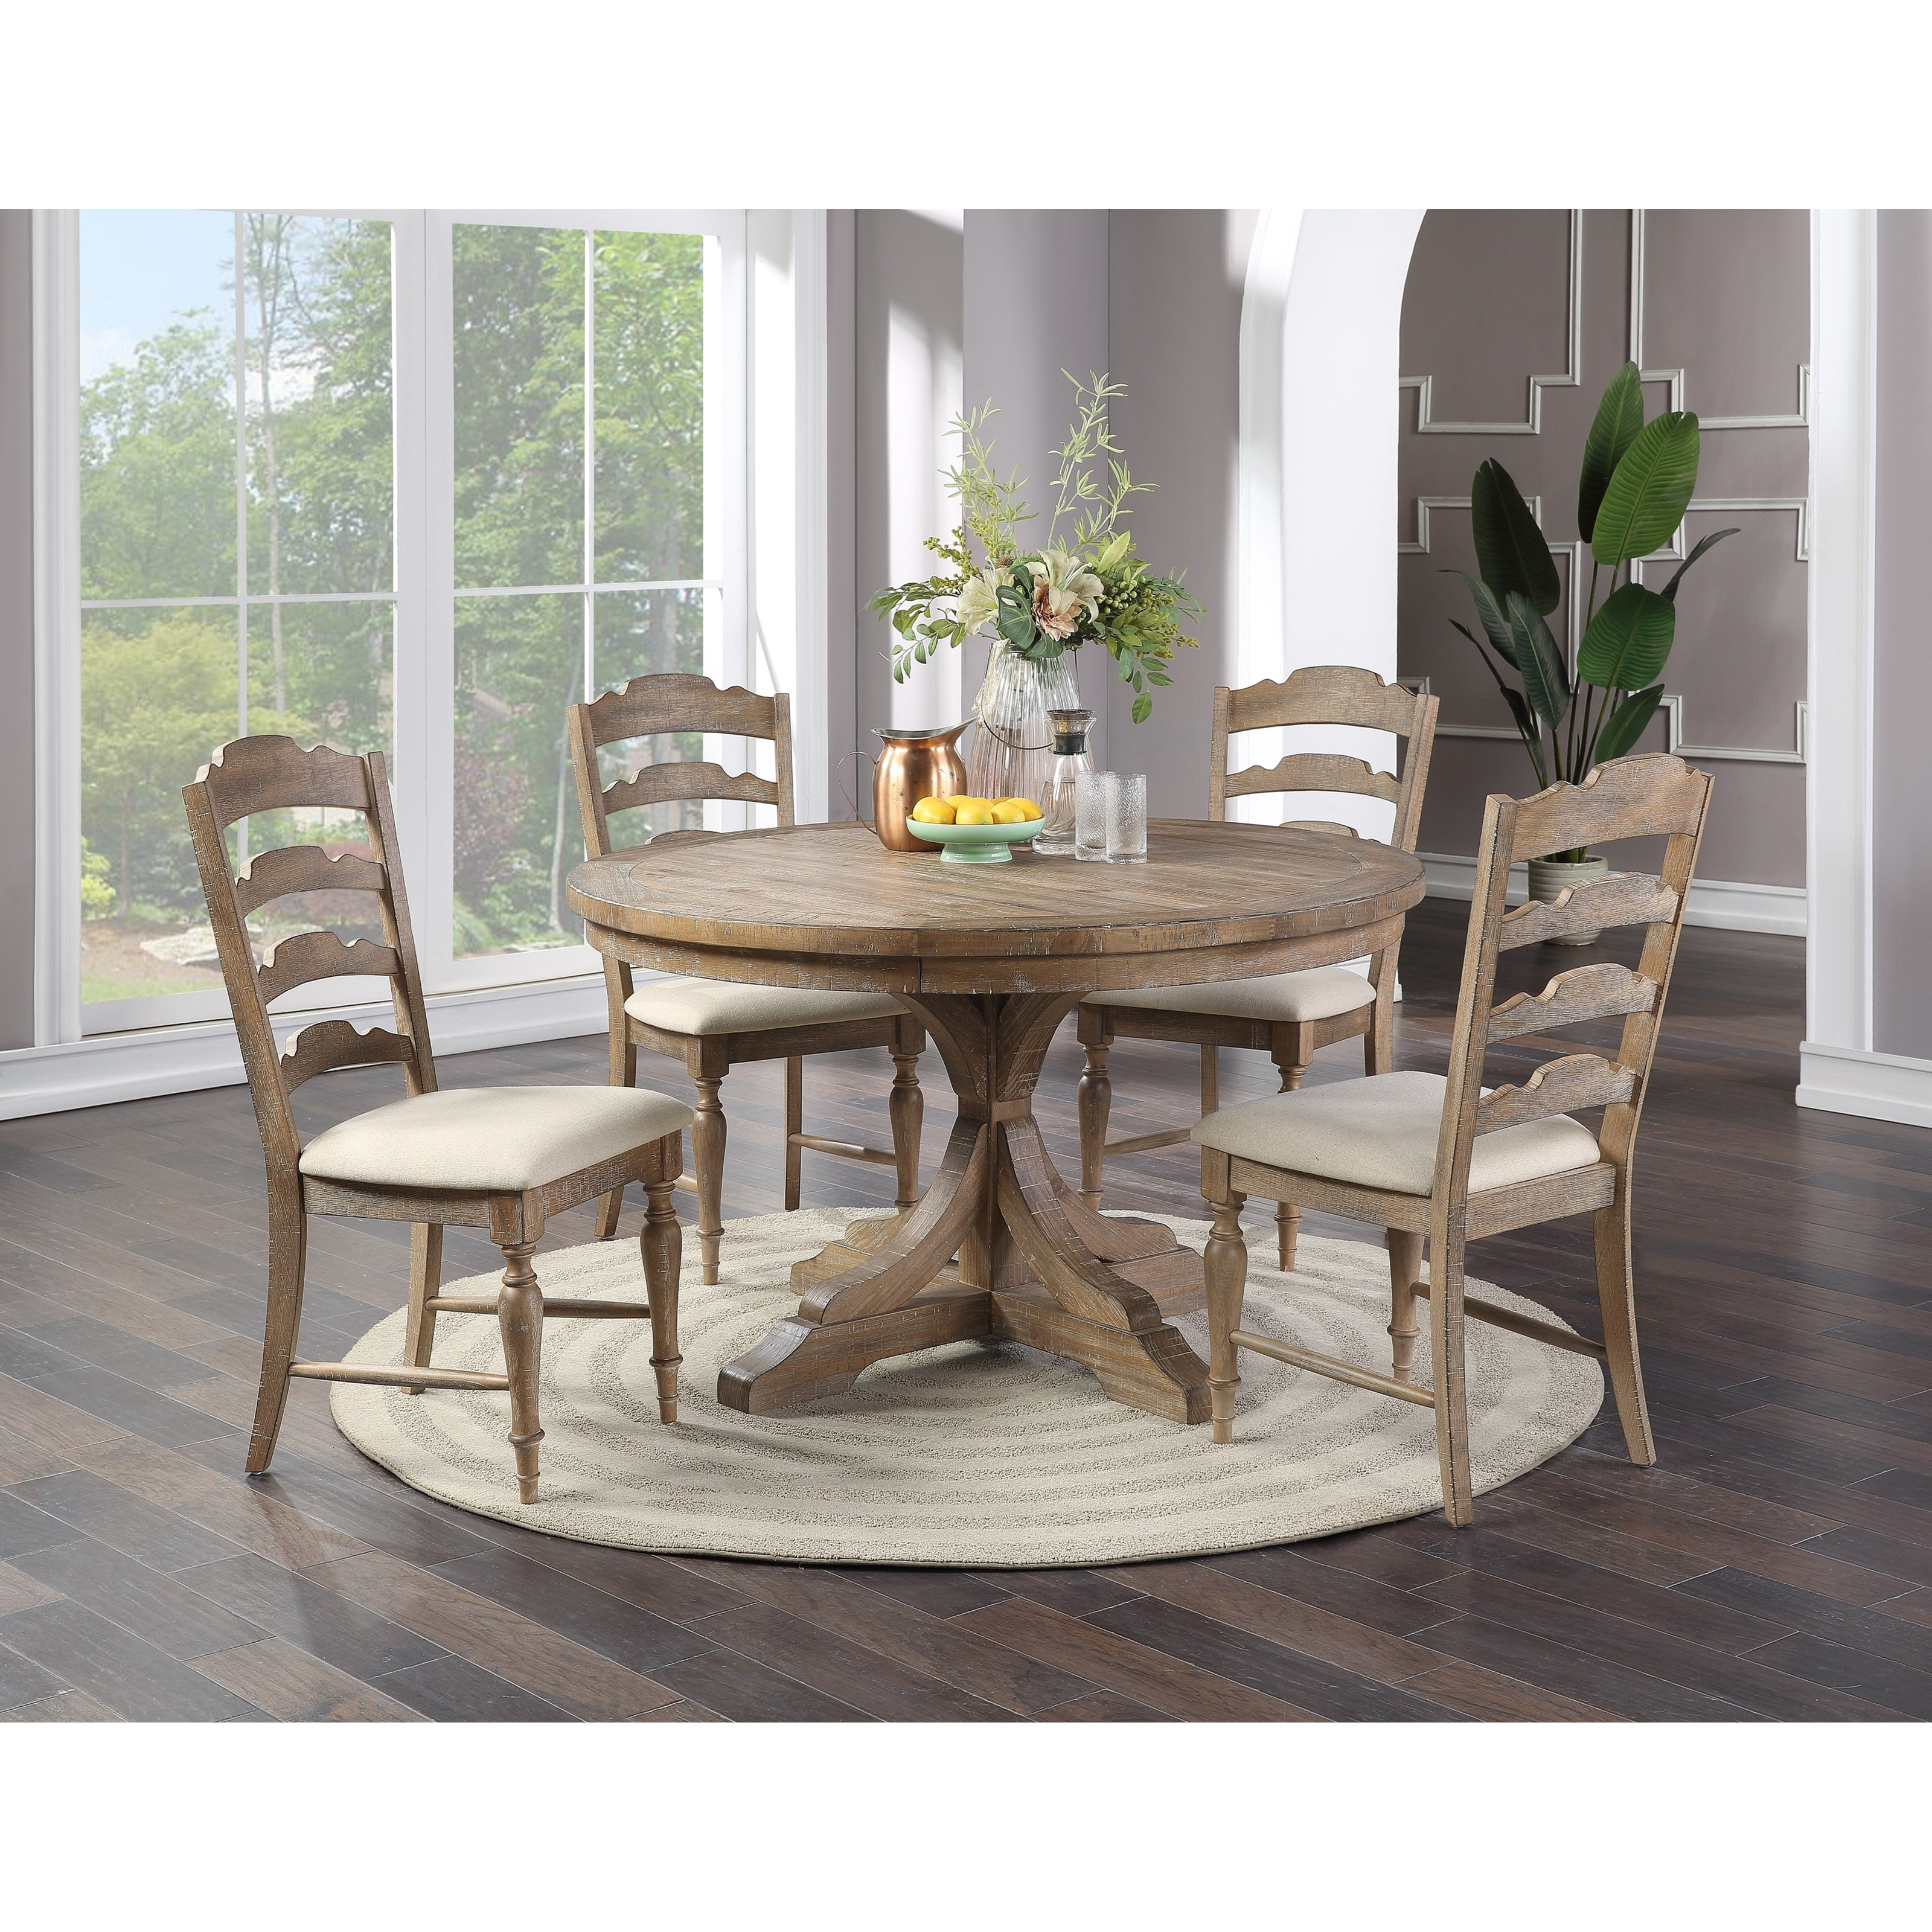 Augusta 5-Piece Dining Set by Winners Only at Simply Home by Lindy's